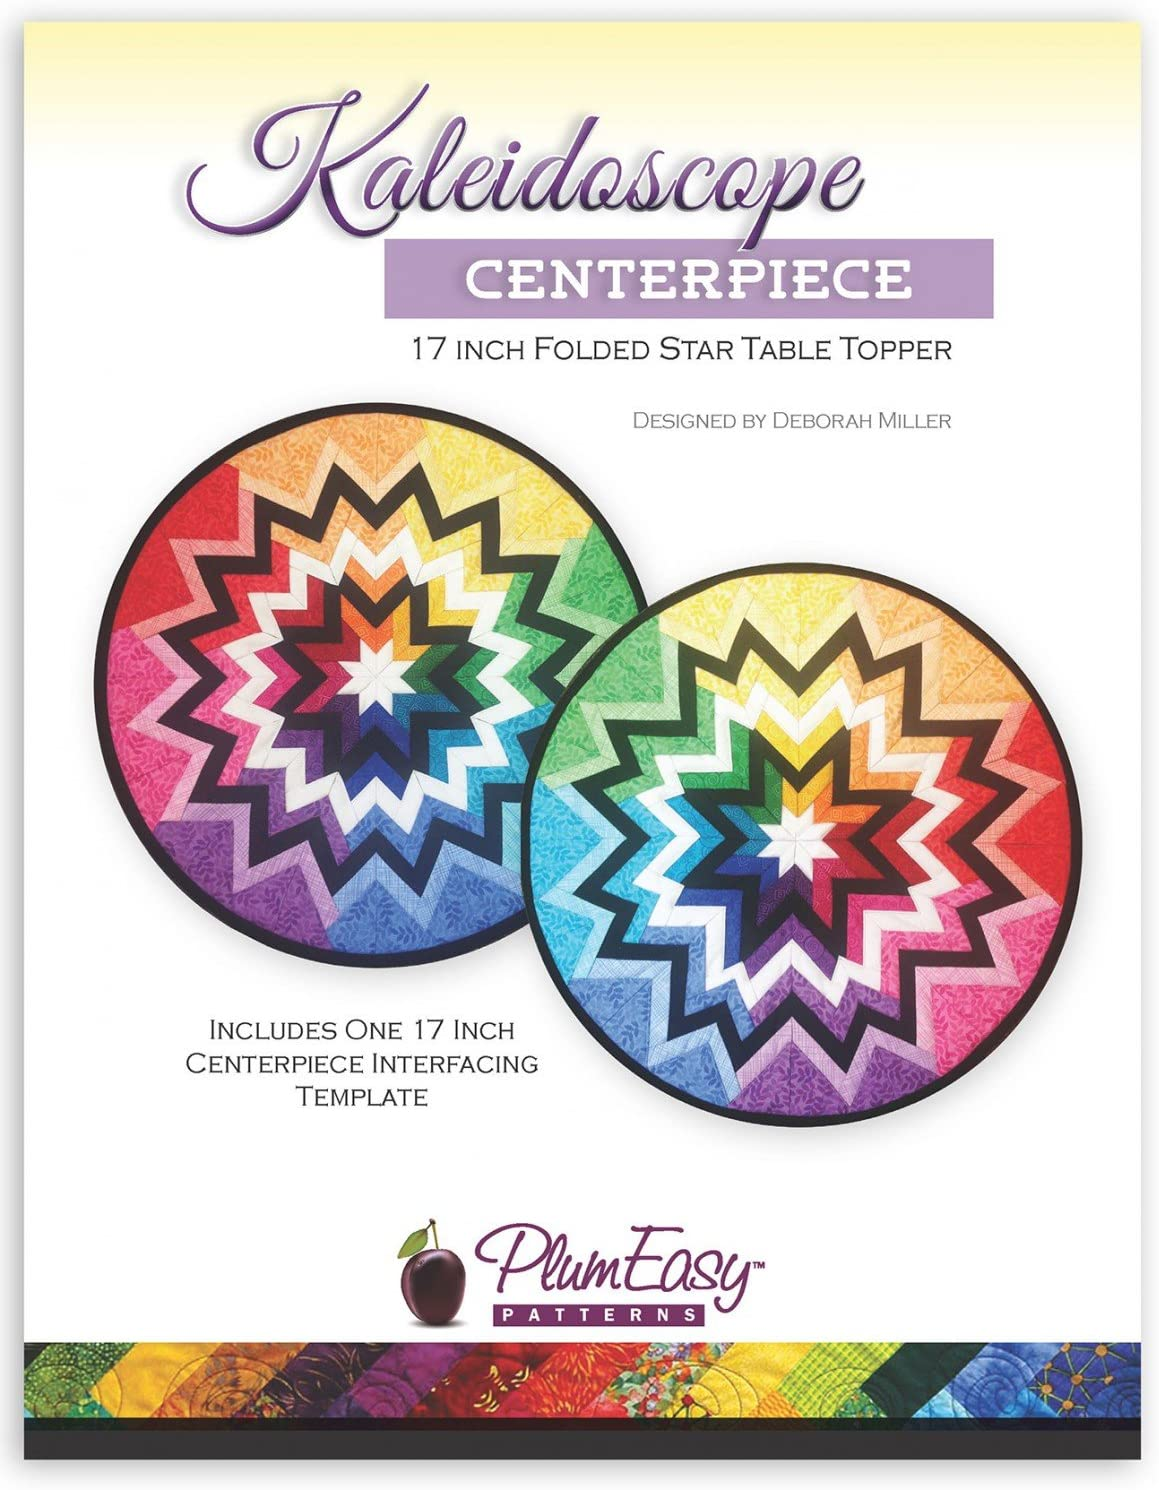 Kaleidoscope Centerpiece 17 Inch Folded Star Table Topper by Plum Easy Patterns PEP-127